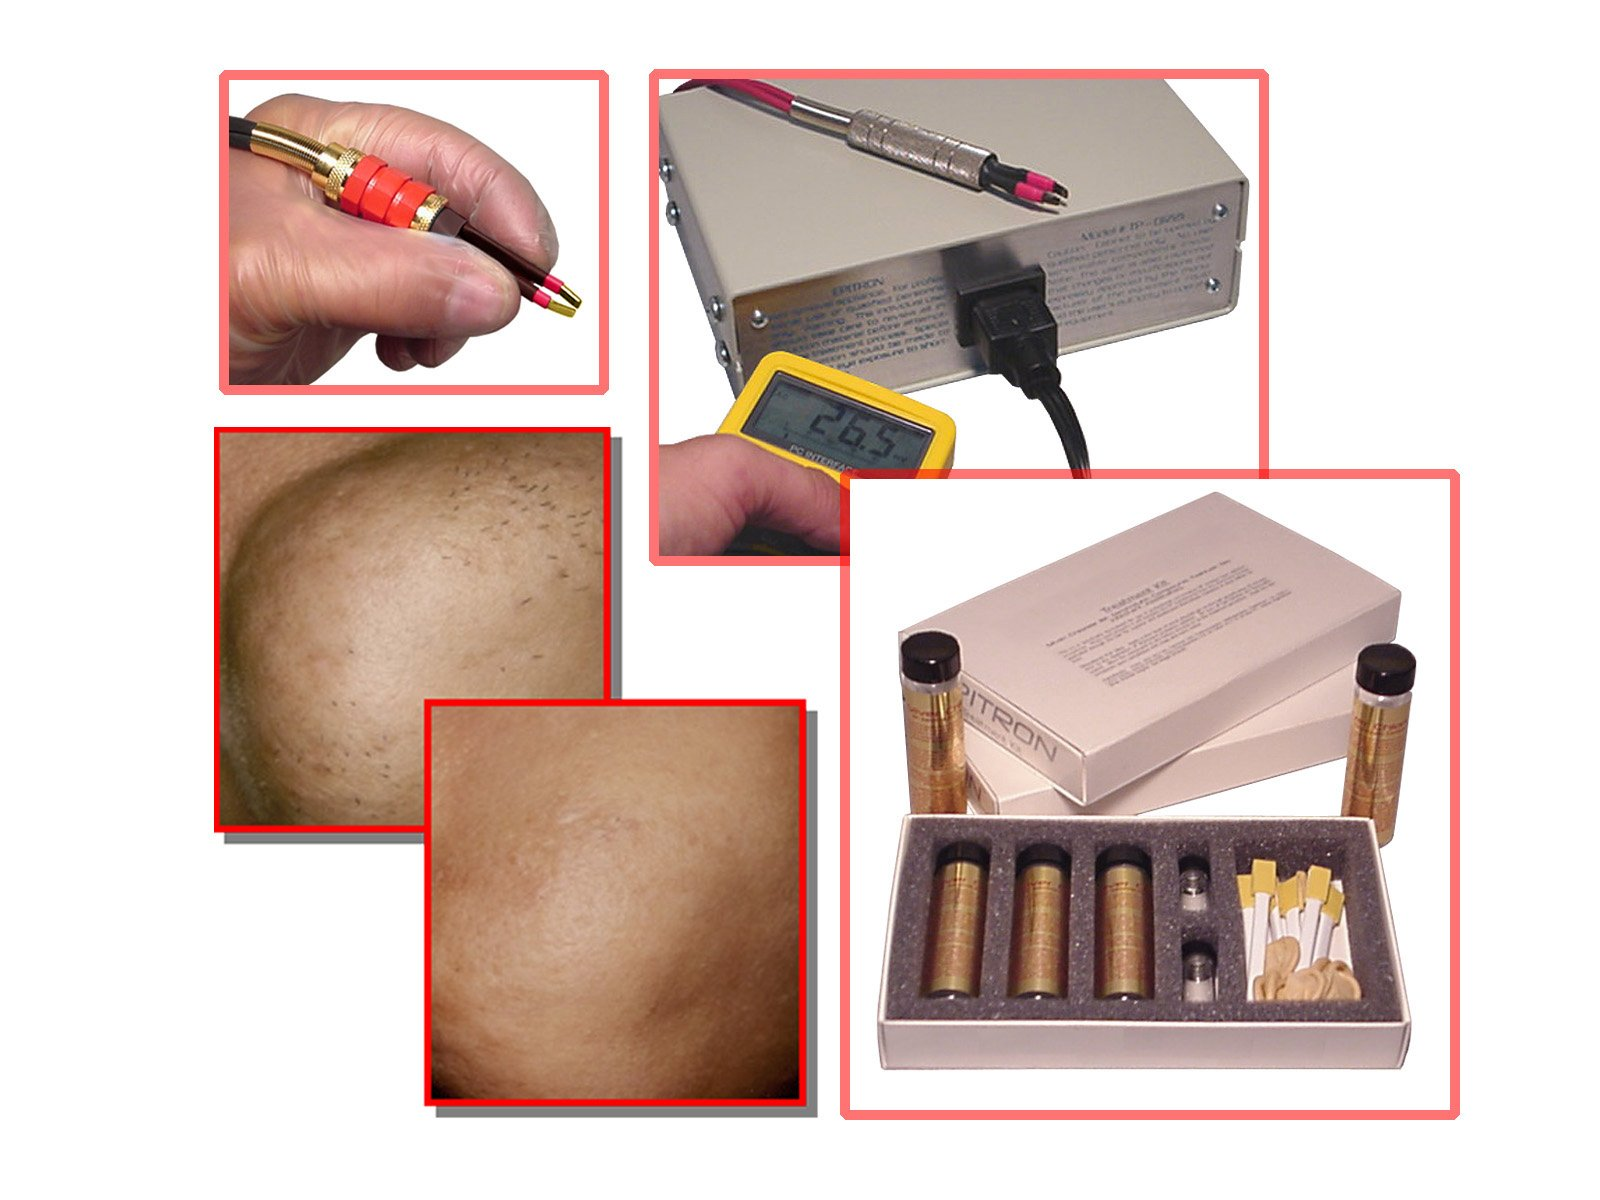 Epitron Shortwave Silver Chloride Topical Replacement for Permanent Hair Removal Machines